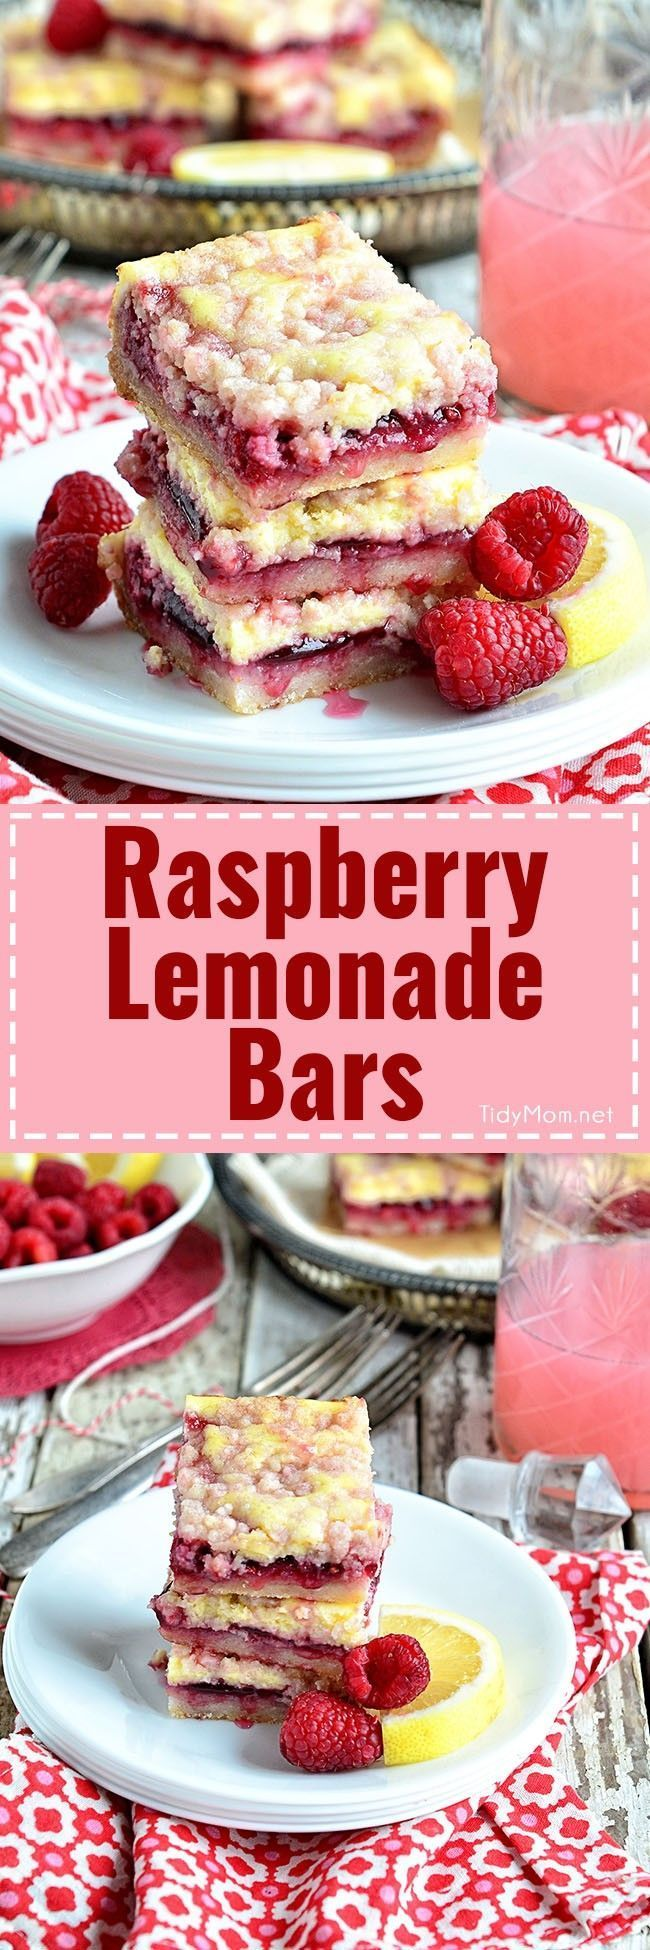 Raspberry Lemonade Bars are bright, cheery, packed with raspberries and tangy lemonade tohelpbeat the winter blues,and the best part? There's a little cheesecake tucked in too. Raspberry Lemonade Bars with streusel topping recipe at TidyMom.net